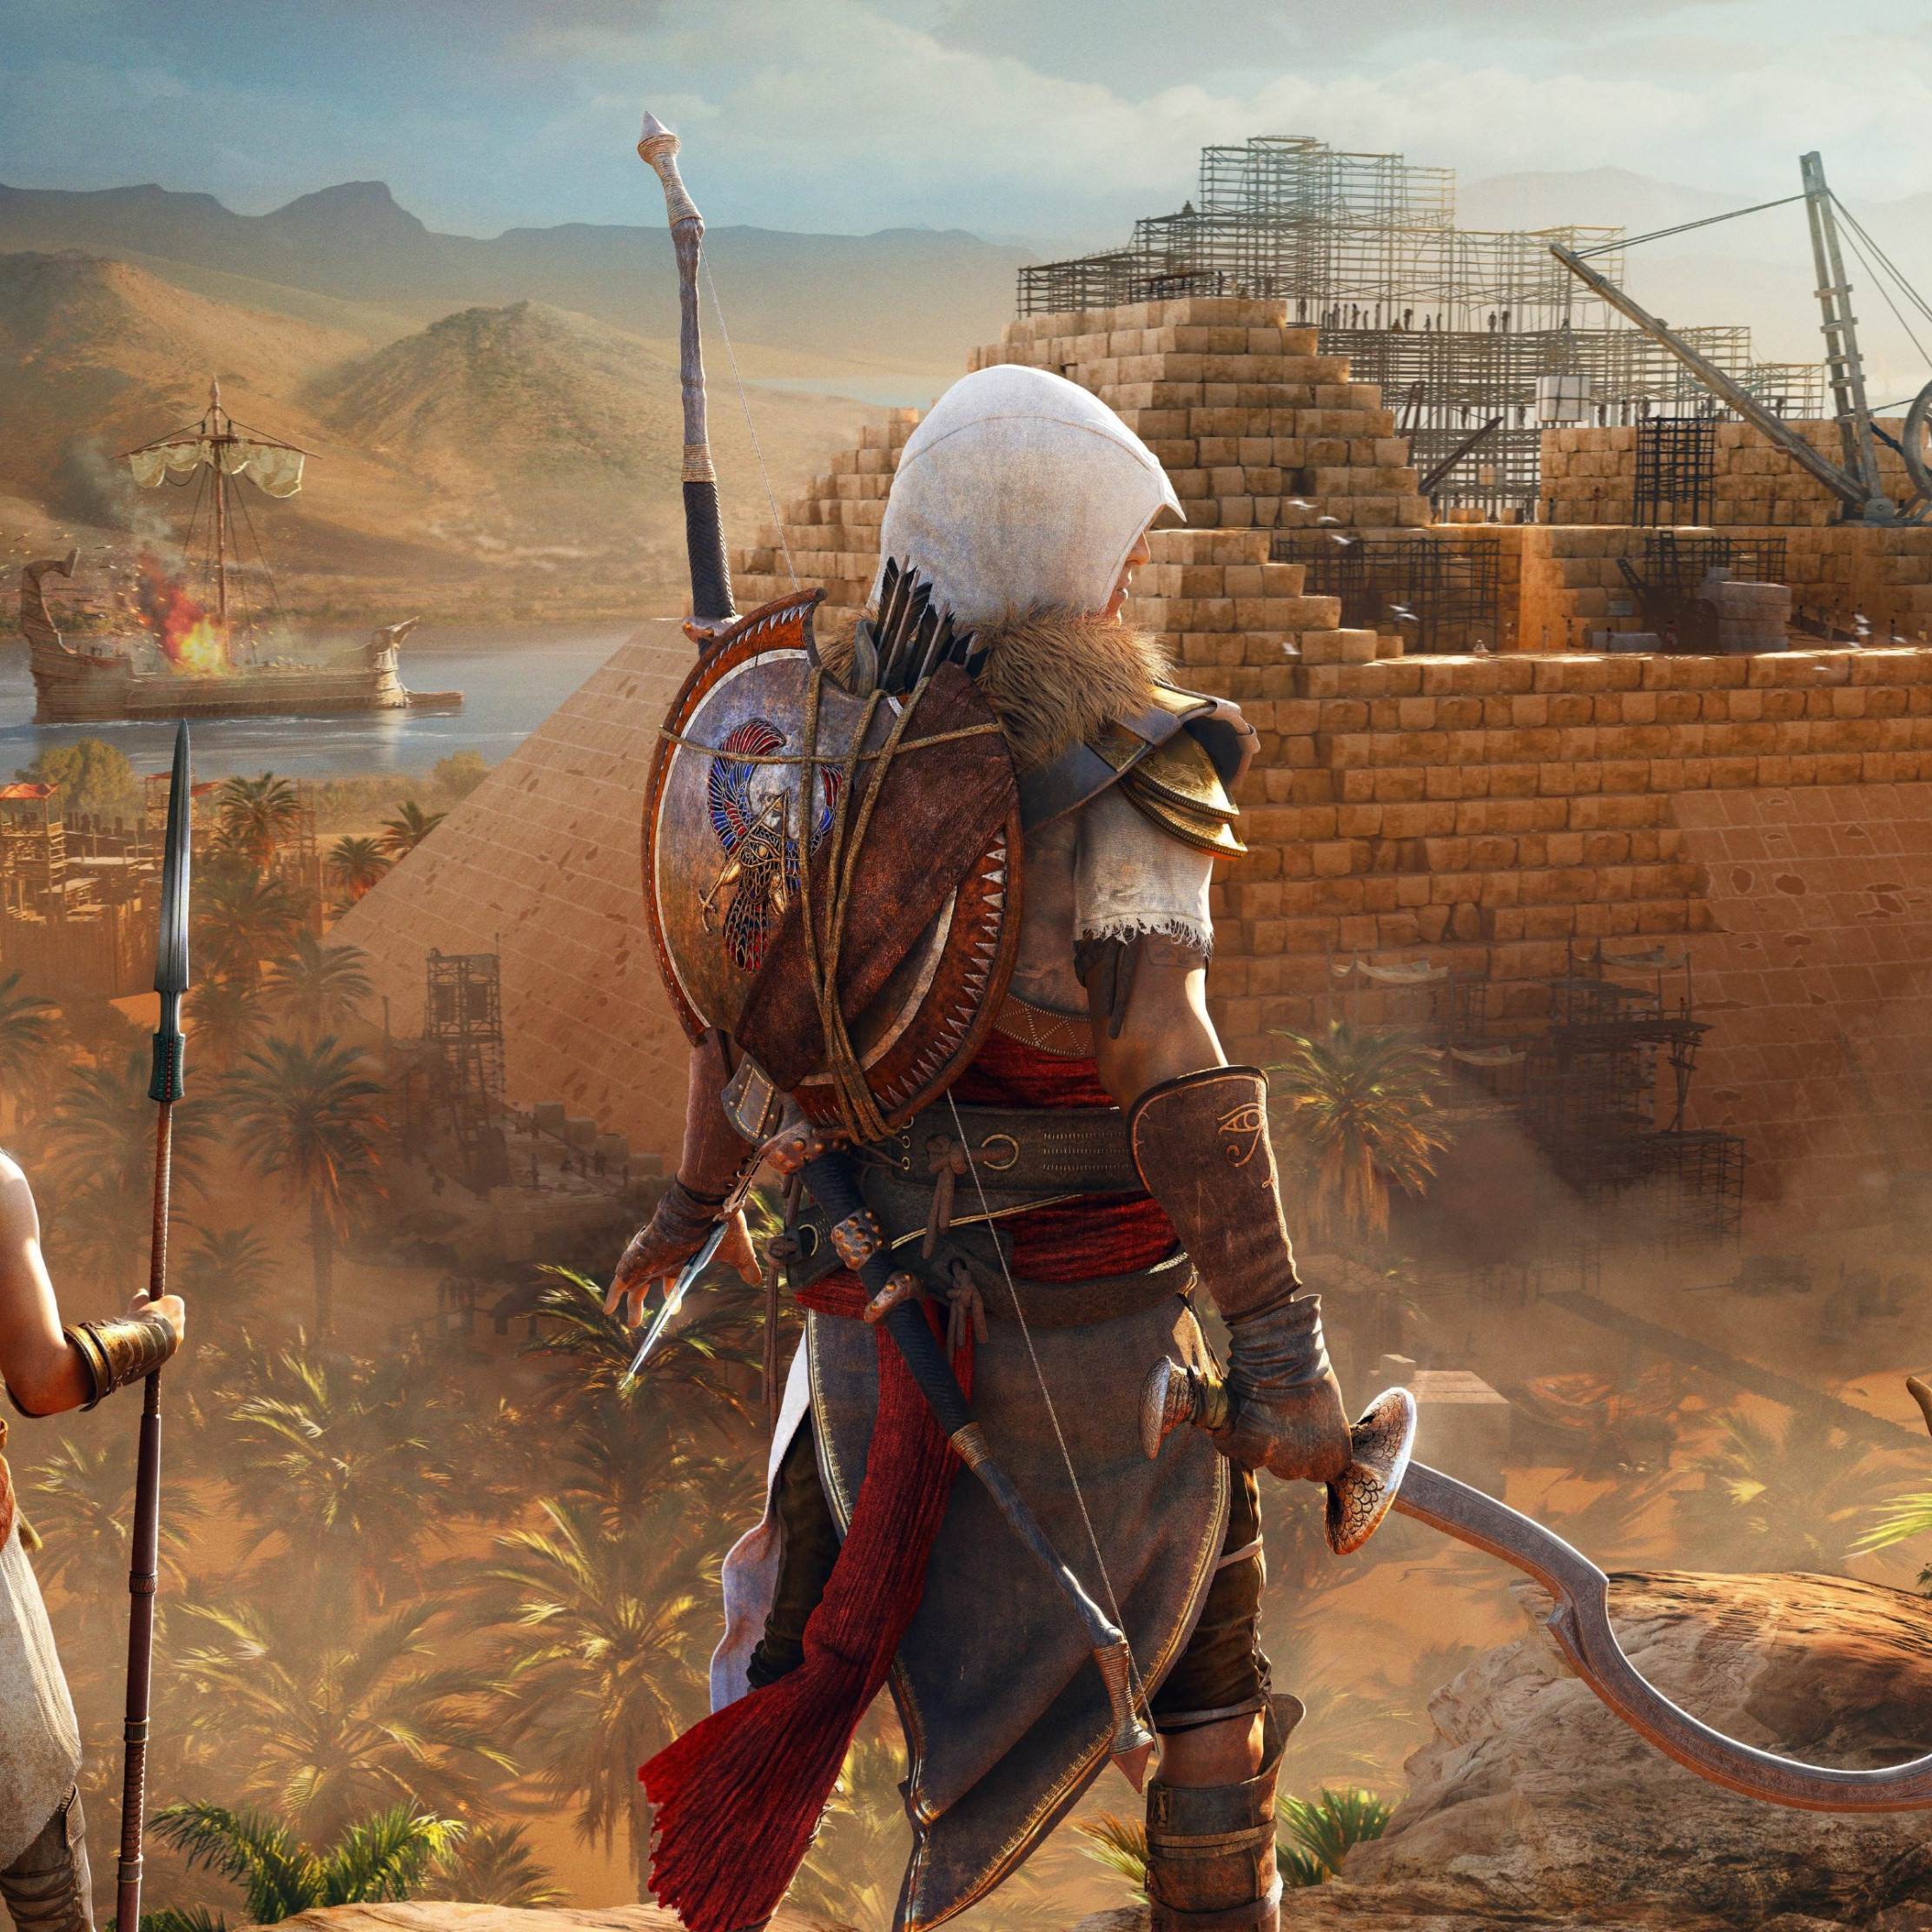 Assassin's Creed Origins: The Hidden Ones wallpaper 2224x2224